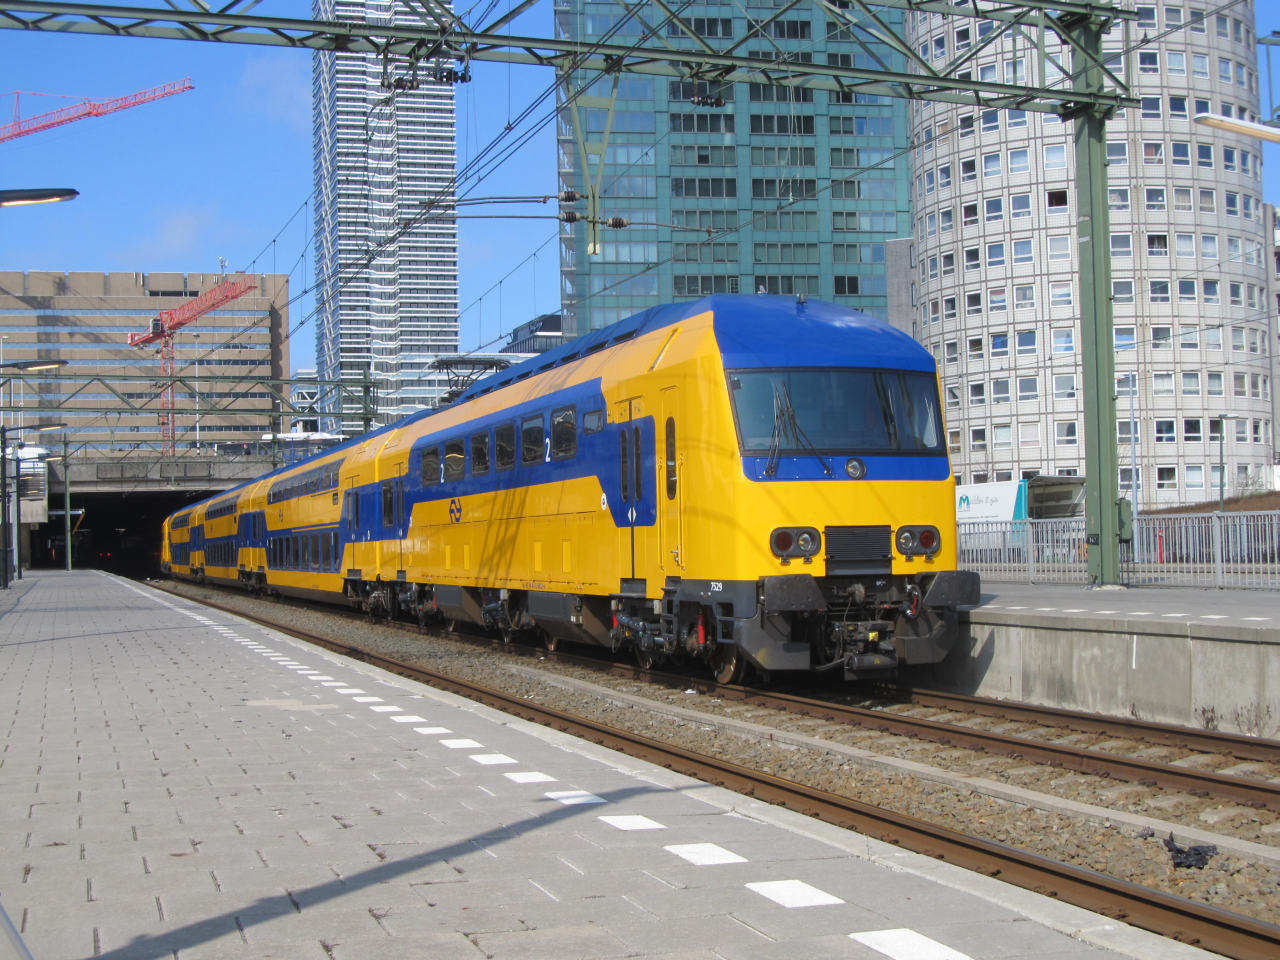 Ns Icr Interieur List Of Trains In The Netherlands Wikipedia